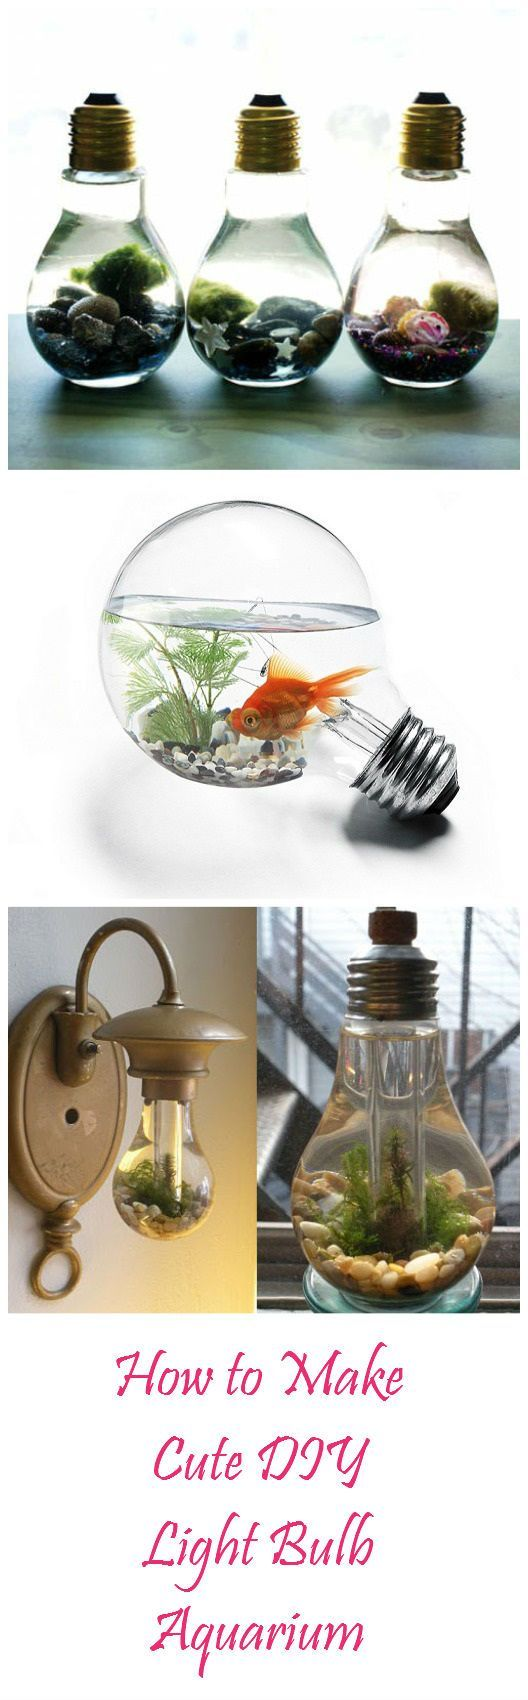 How to Make Cute DIY Light Bulb Aquarium